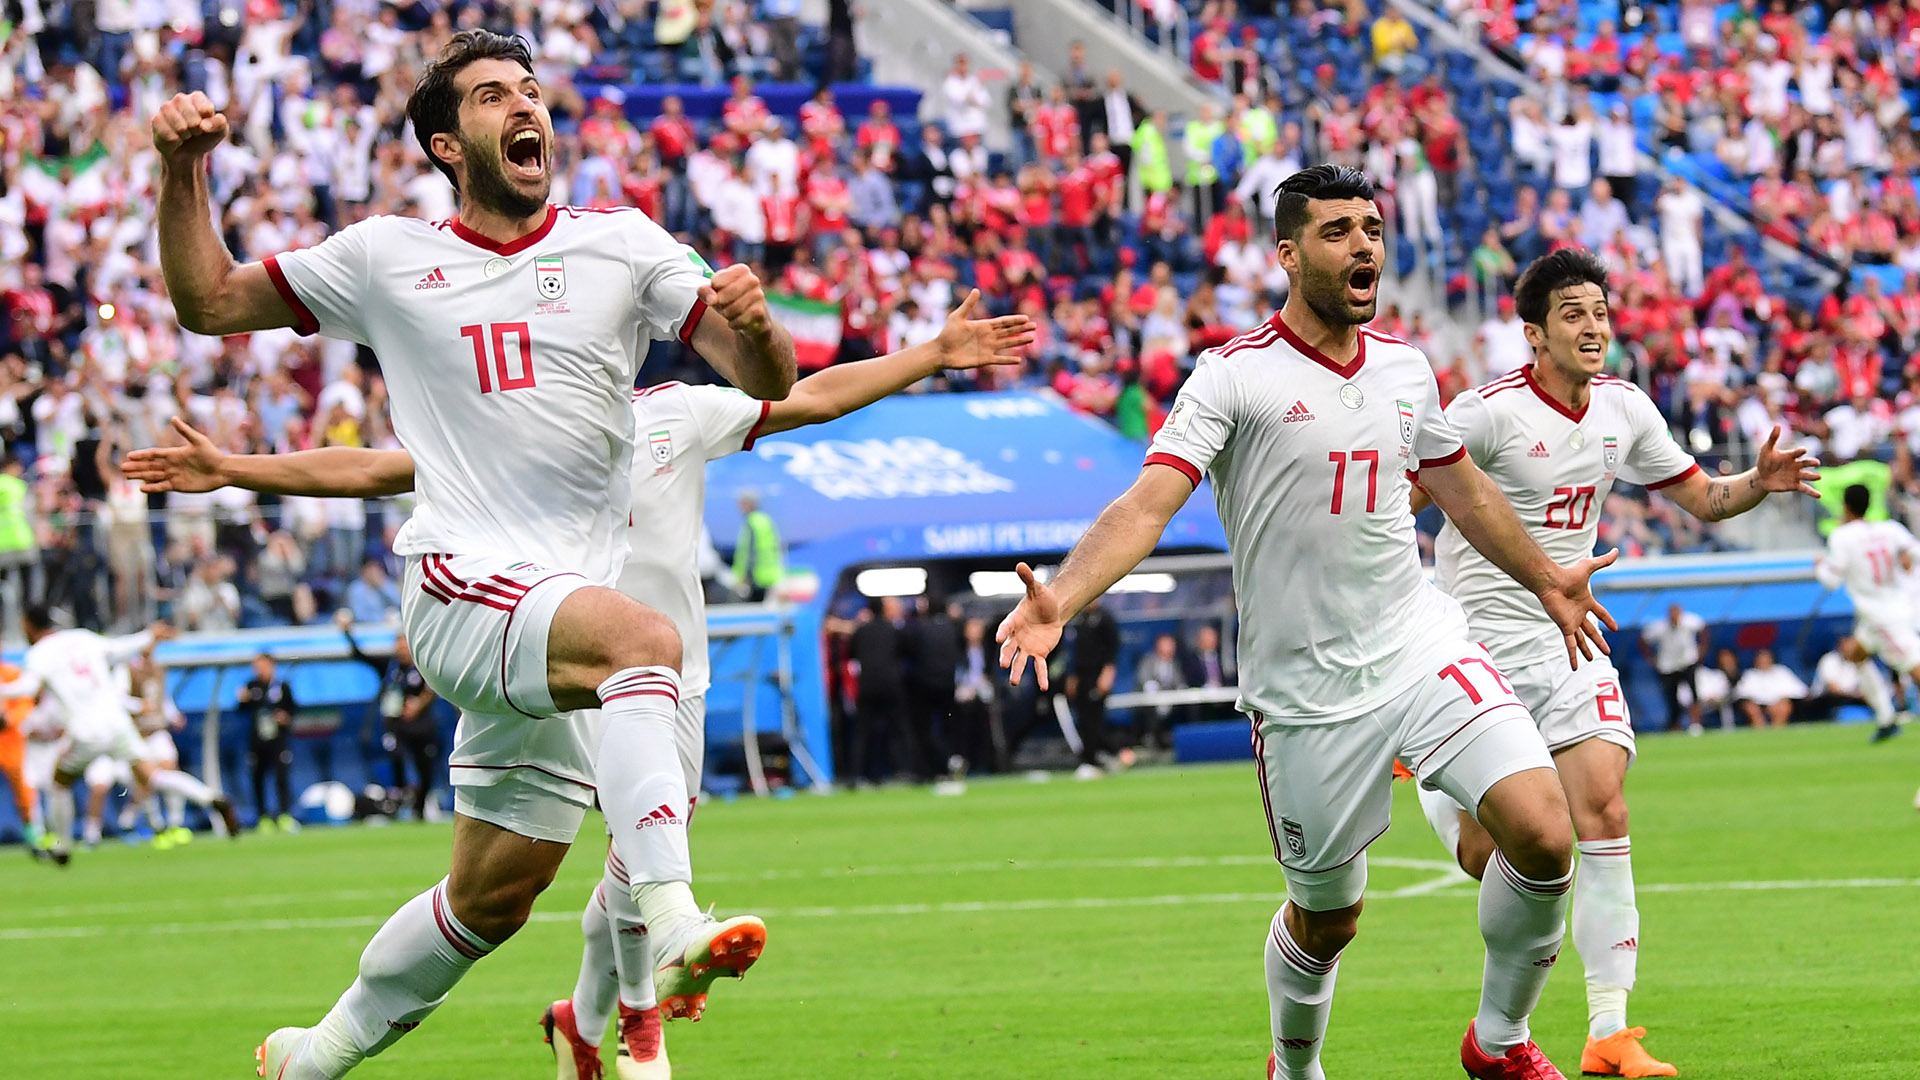 Iran staff member hospitalized after disallowed goal in Spain World Cup game